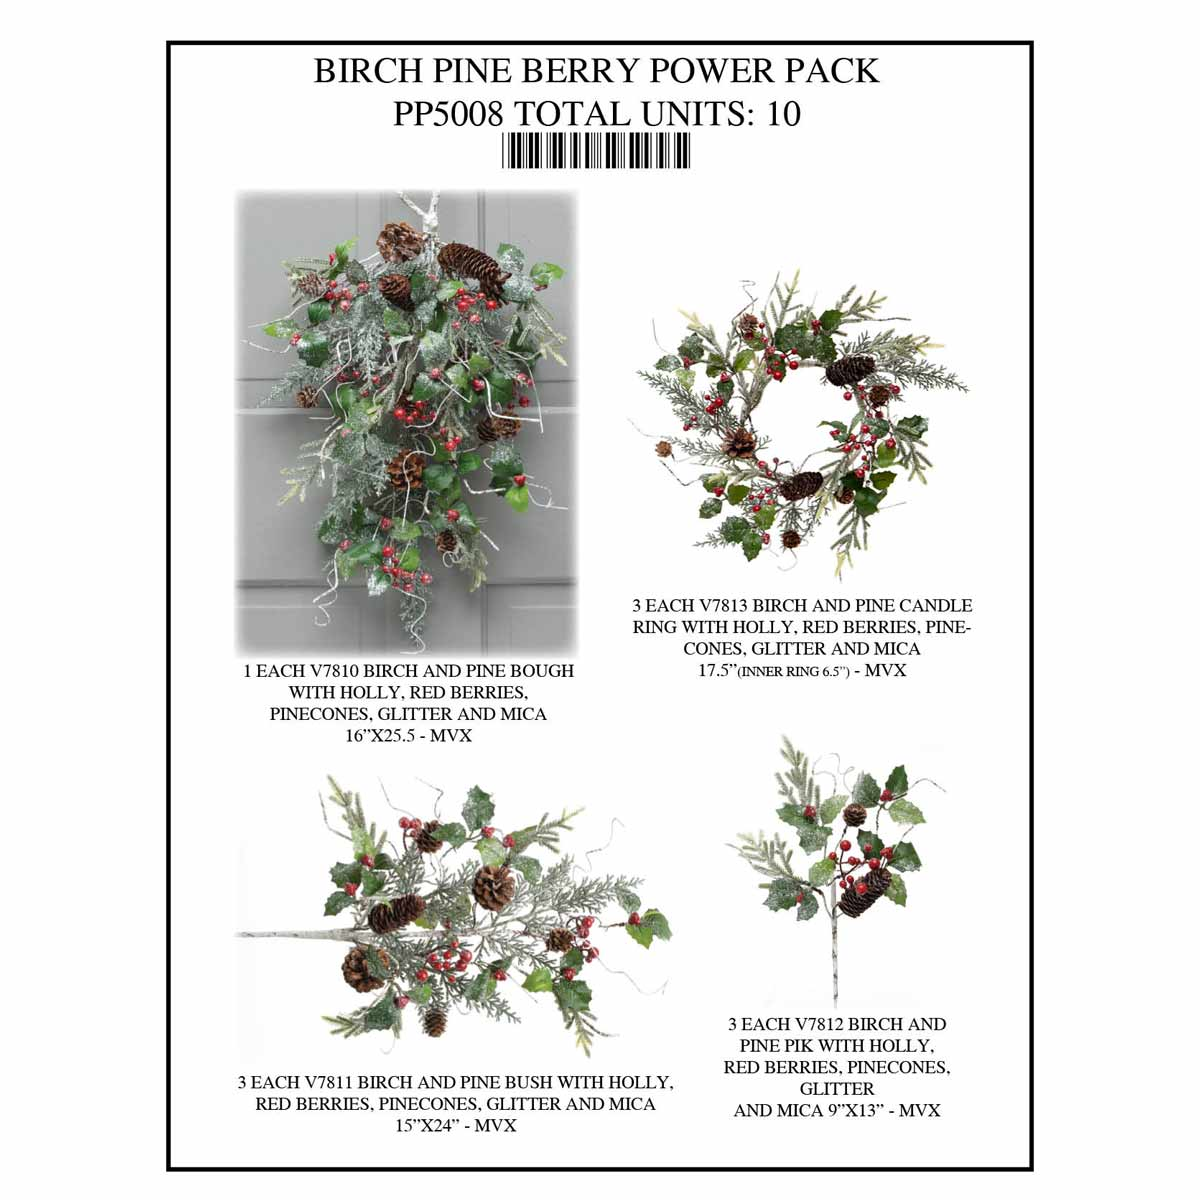 BIRCH PINE BERRY POWER PACK 10 UNITS